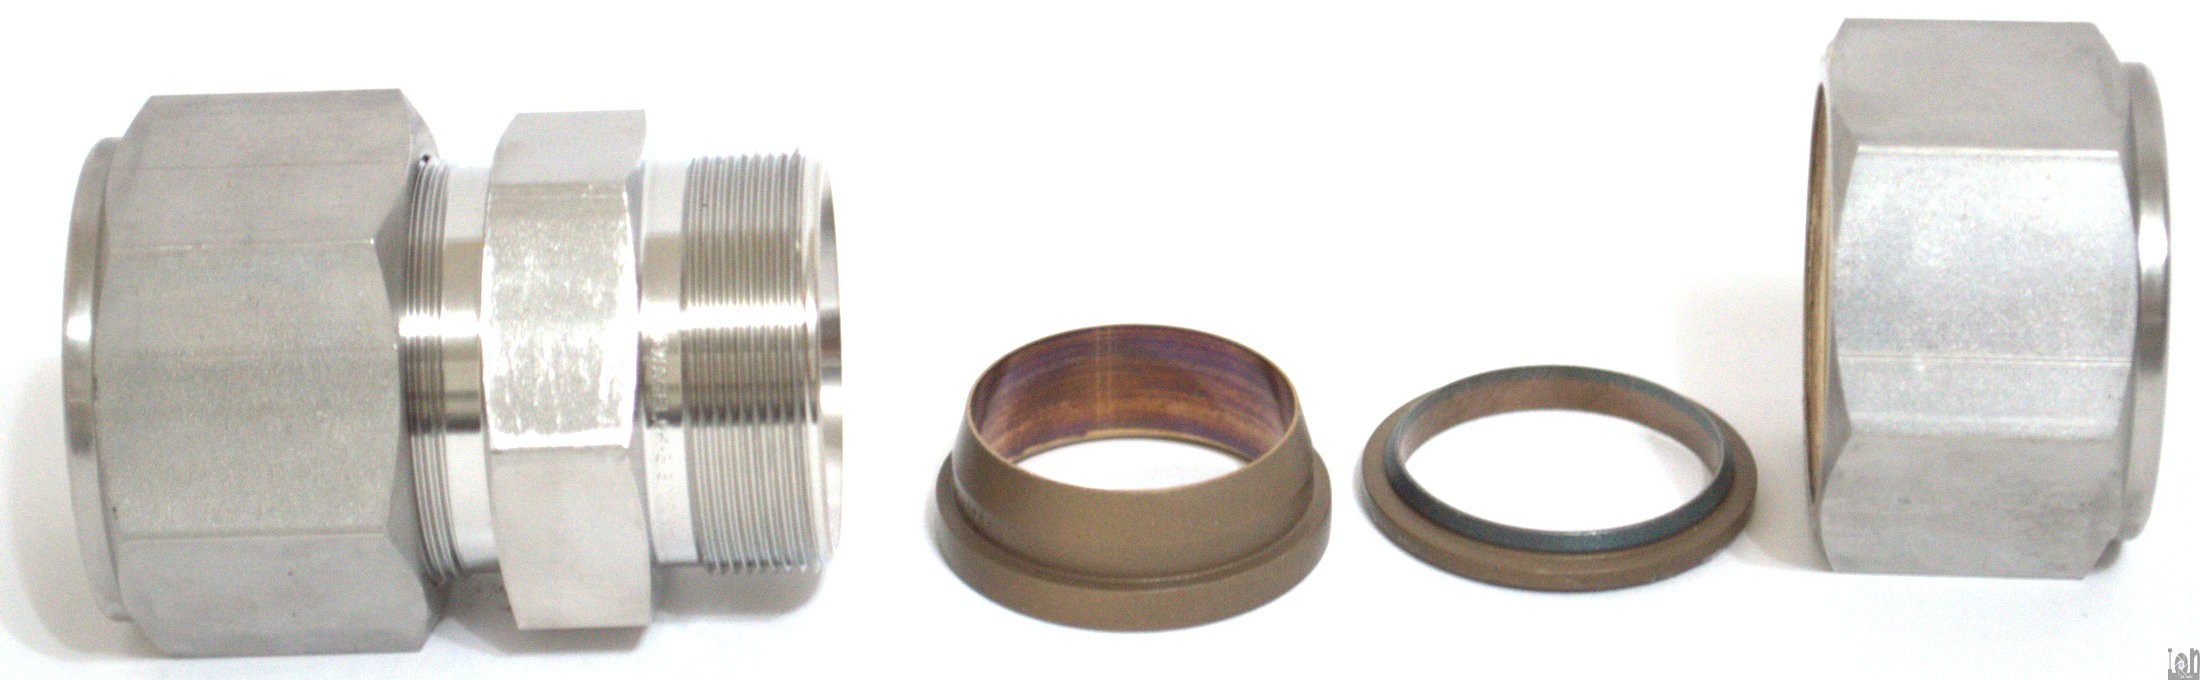 Swagelok quot reducing union stainless steel fitting